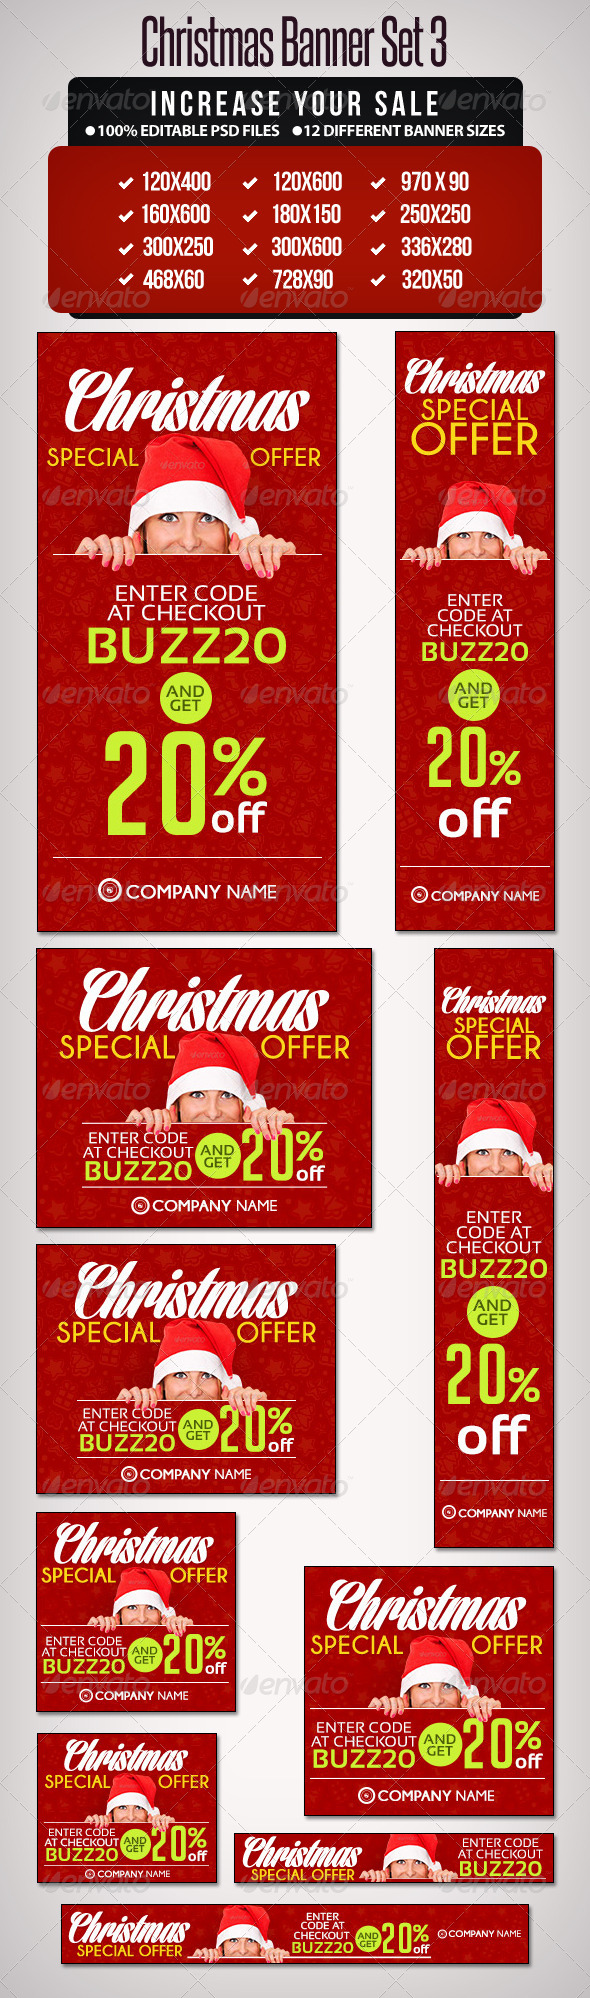 Christmas Banner Set 3 - 12 Sizes - Banners & Ads Web Elements